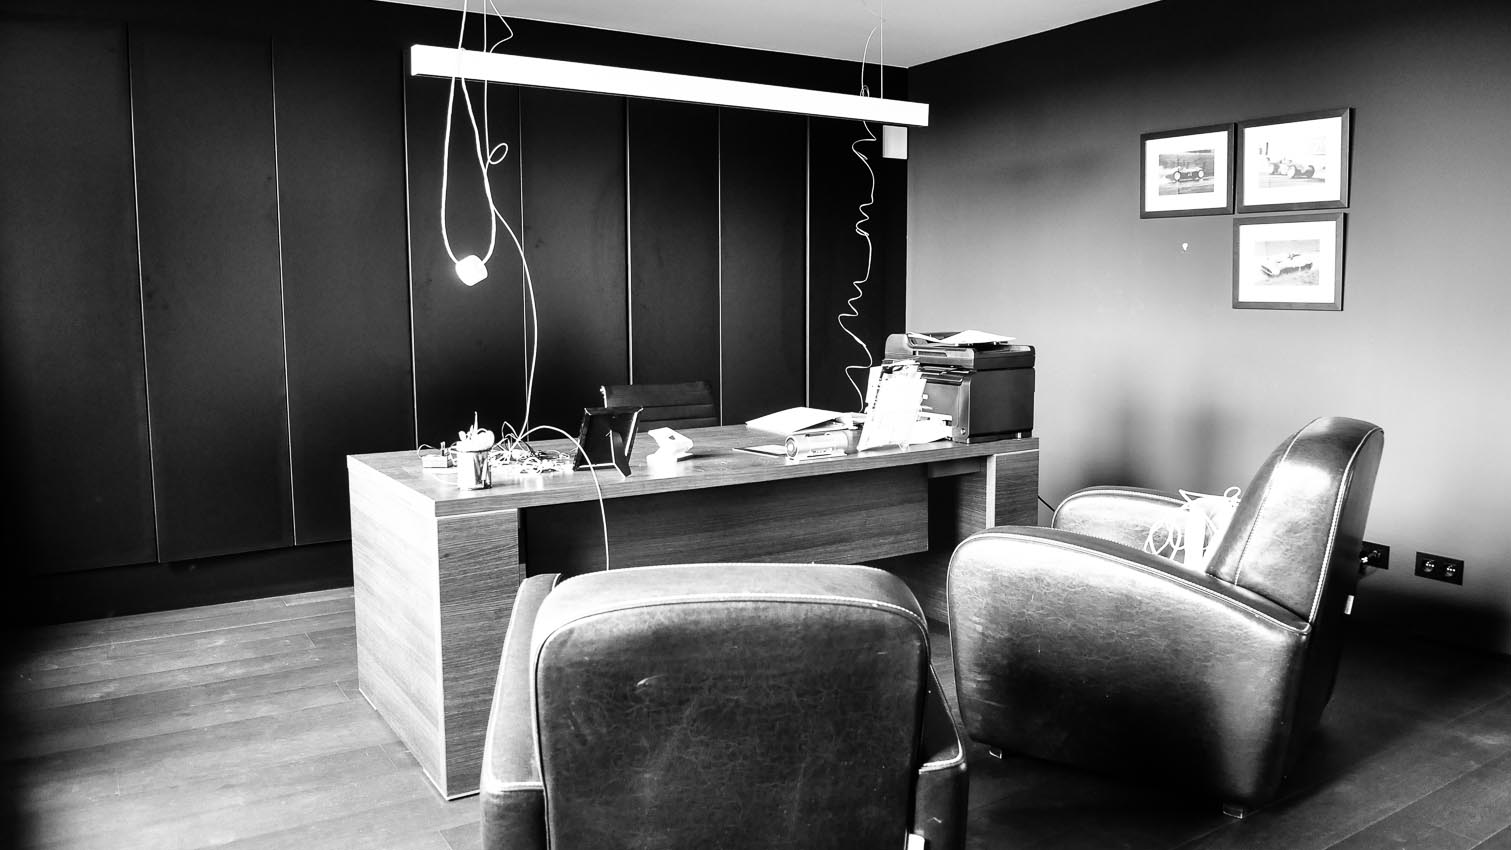 14-bureau-office-location-vente-decors-film-cinema-photo-belgium-bruxelles